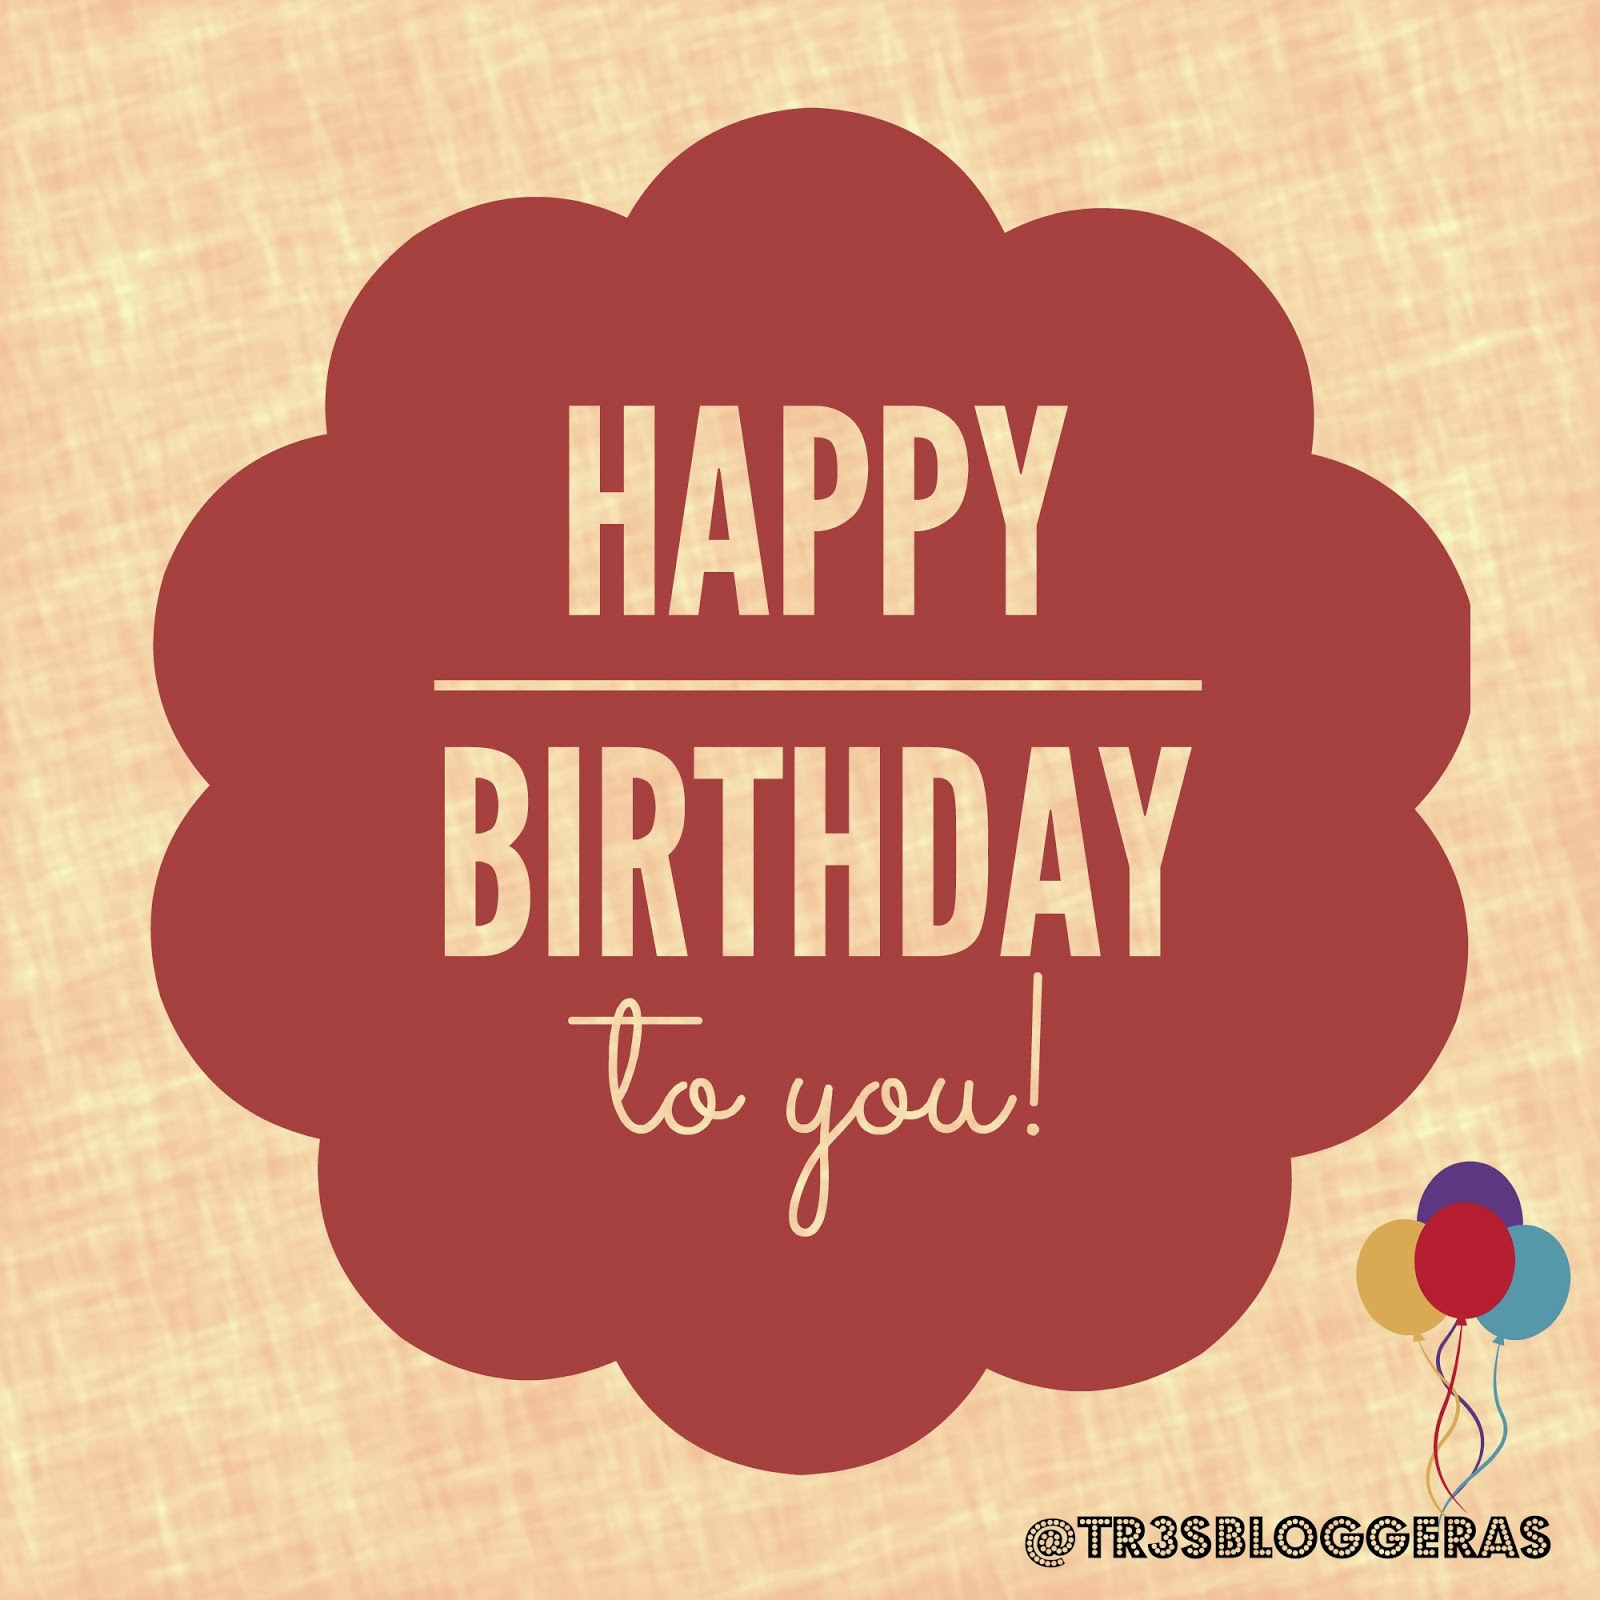 happy birthday to you! @tr3s.bloggeras